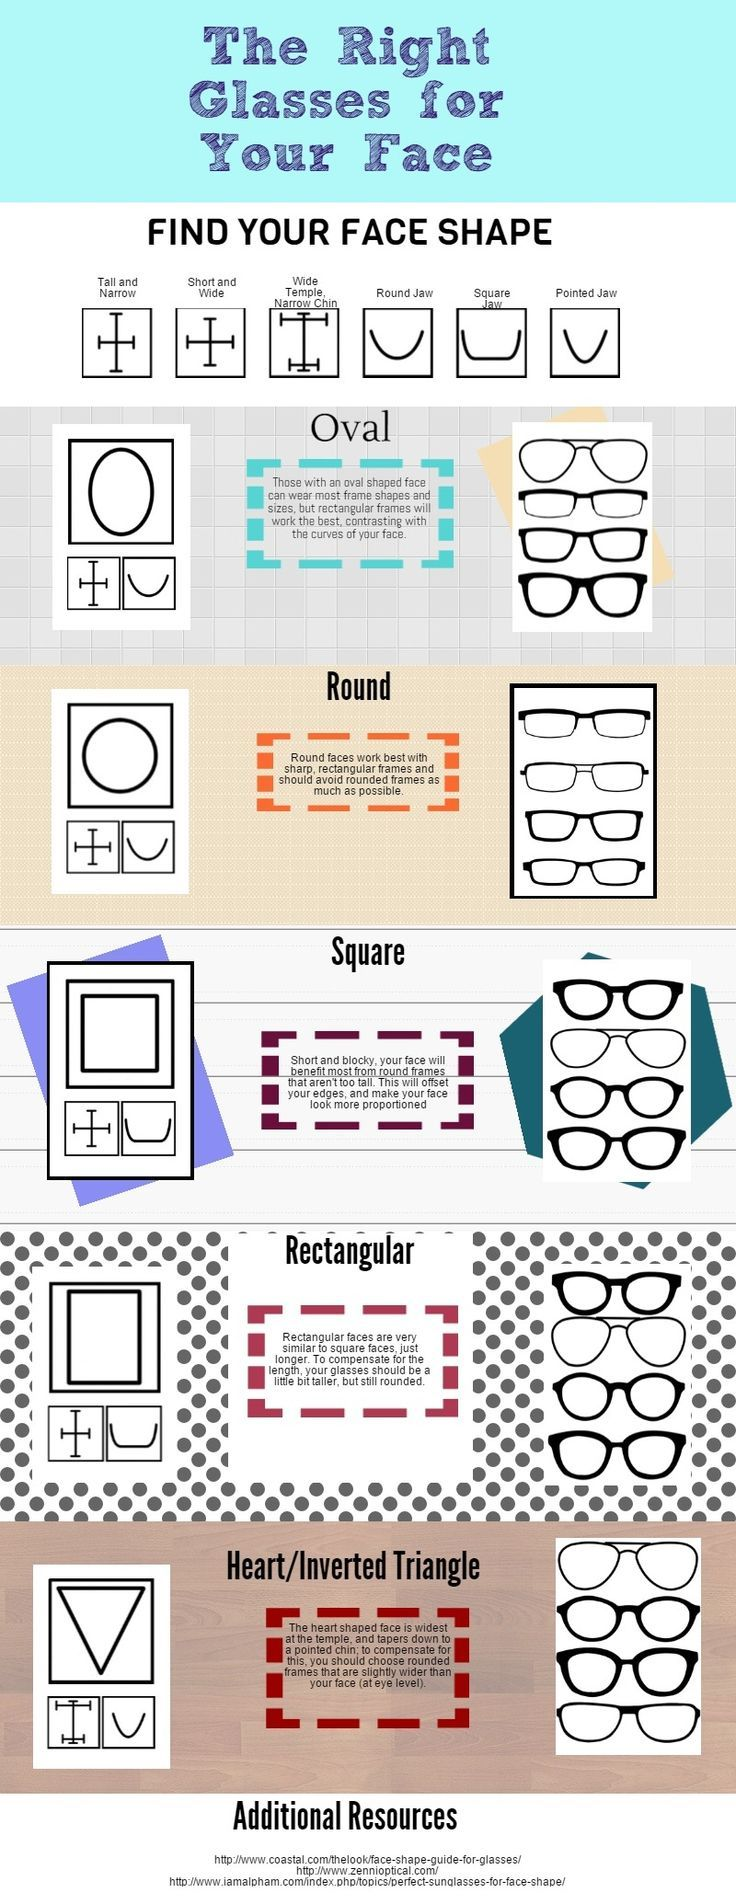 Choosing the right glasses for your face shape. #mensstyle #glasses